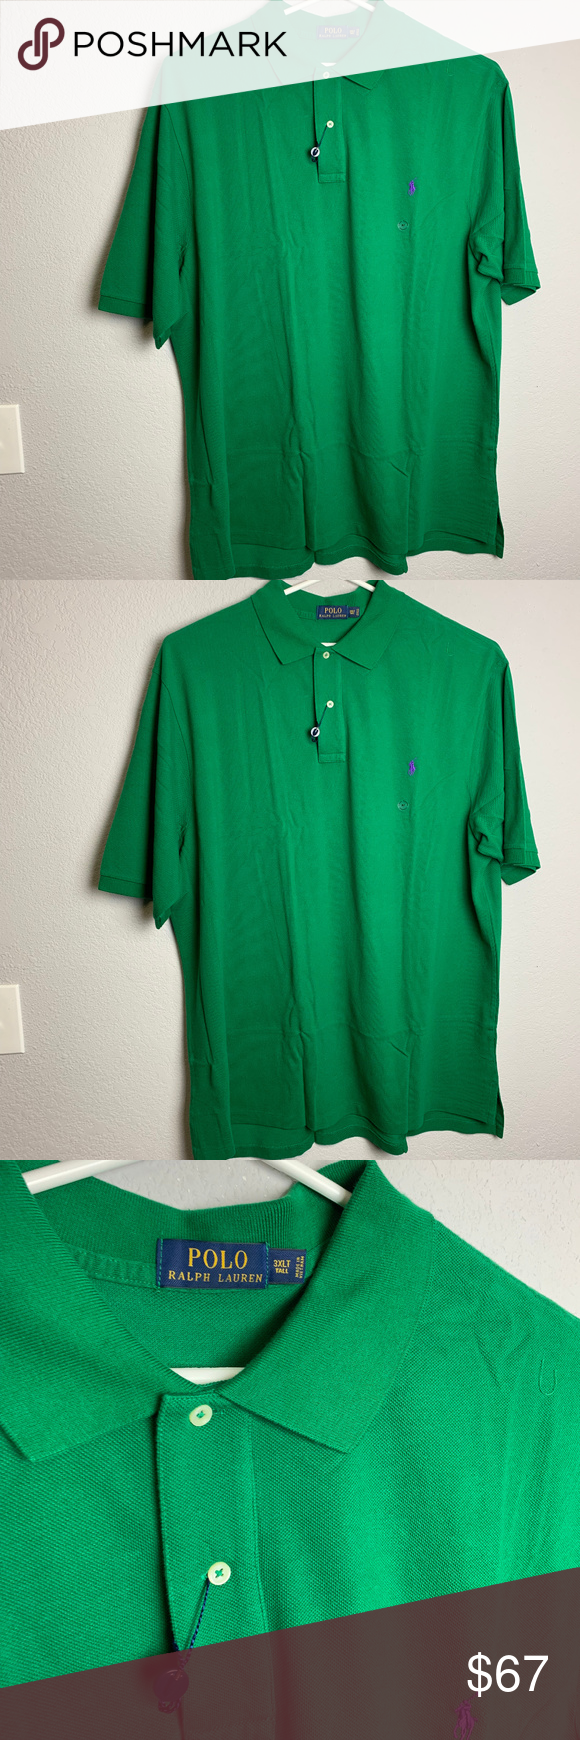 Green Things polo t shirt green color